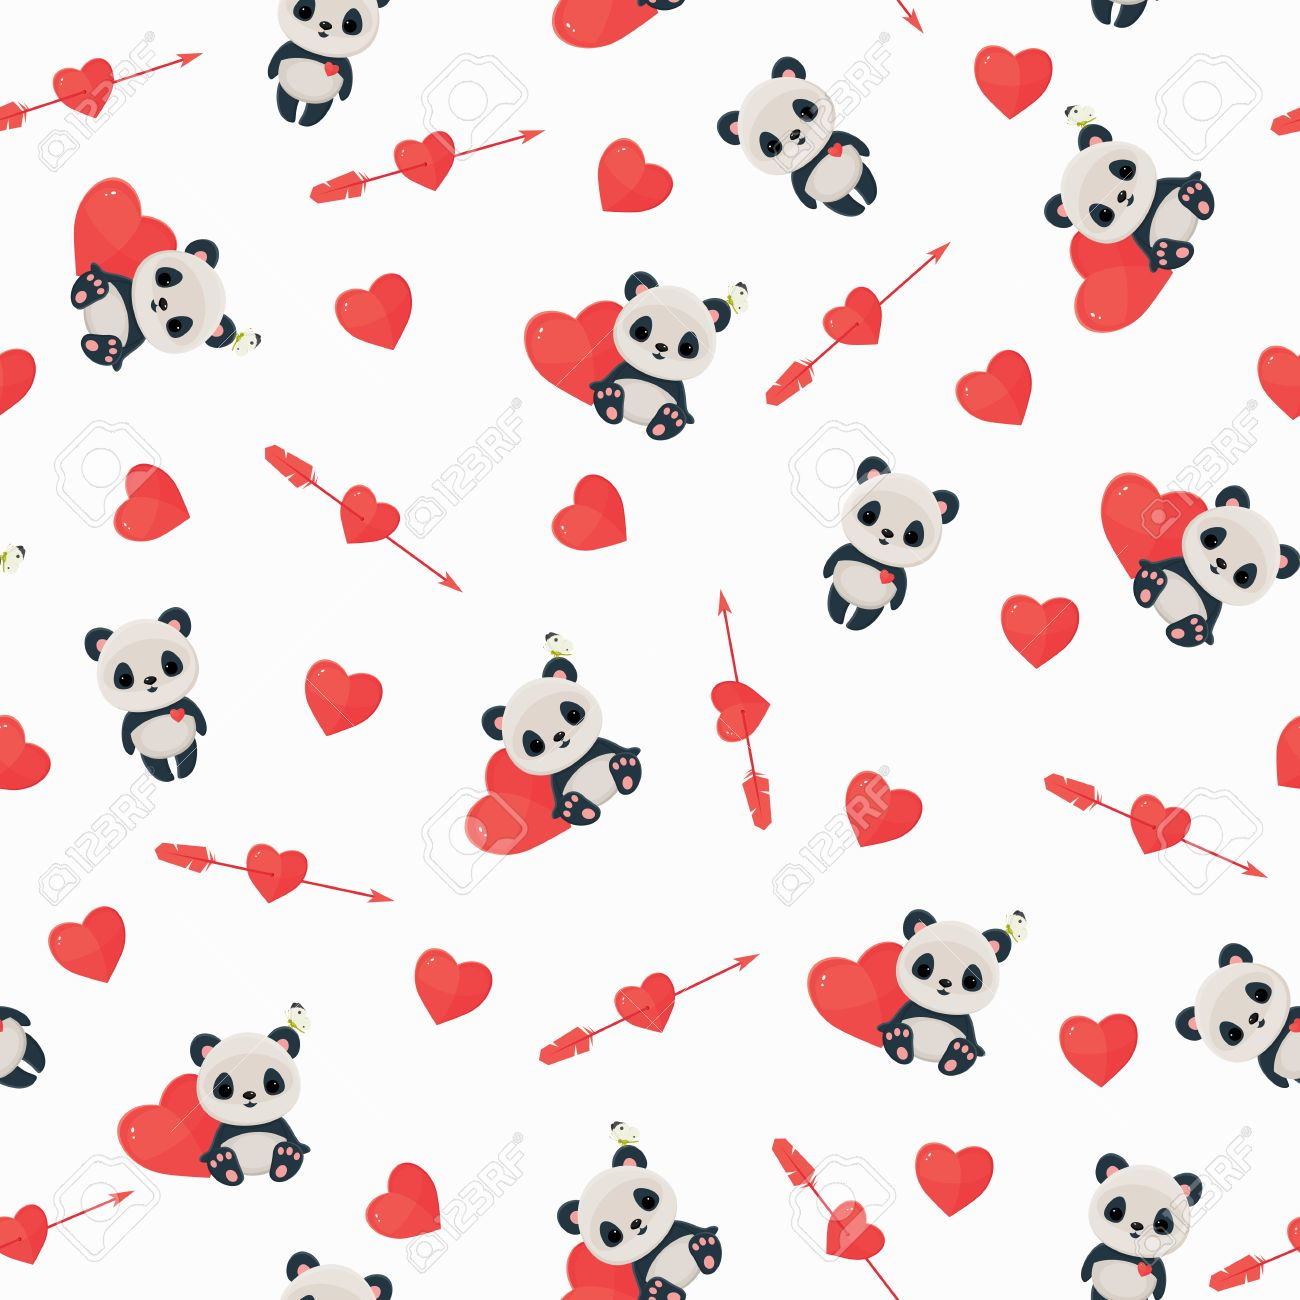 Seamless pattern with panda in love. Saint Valentine's Day wallpaper. Panda, heart,